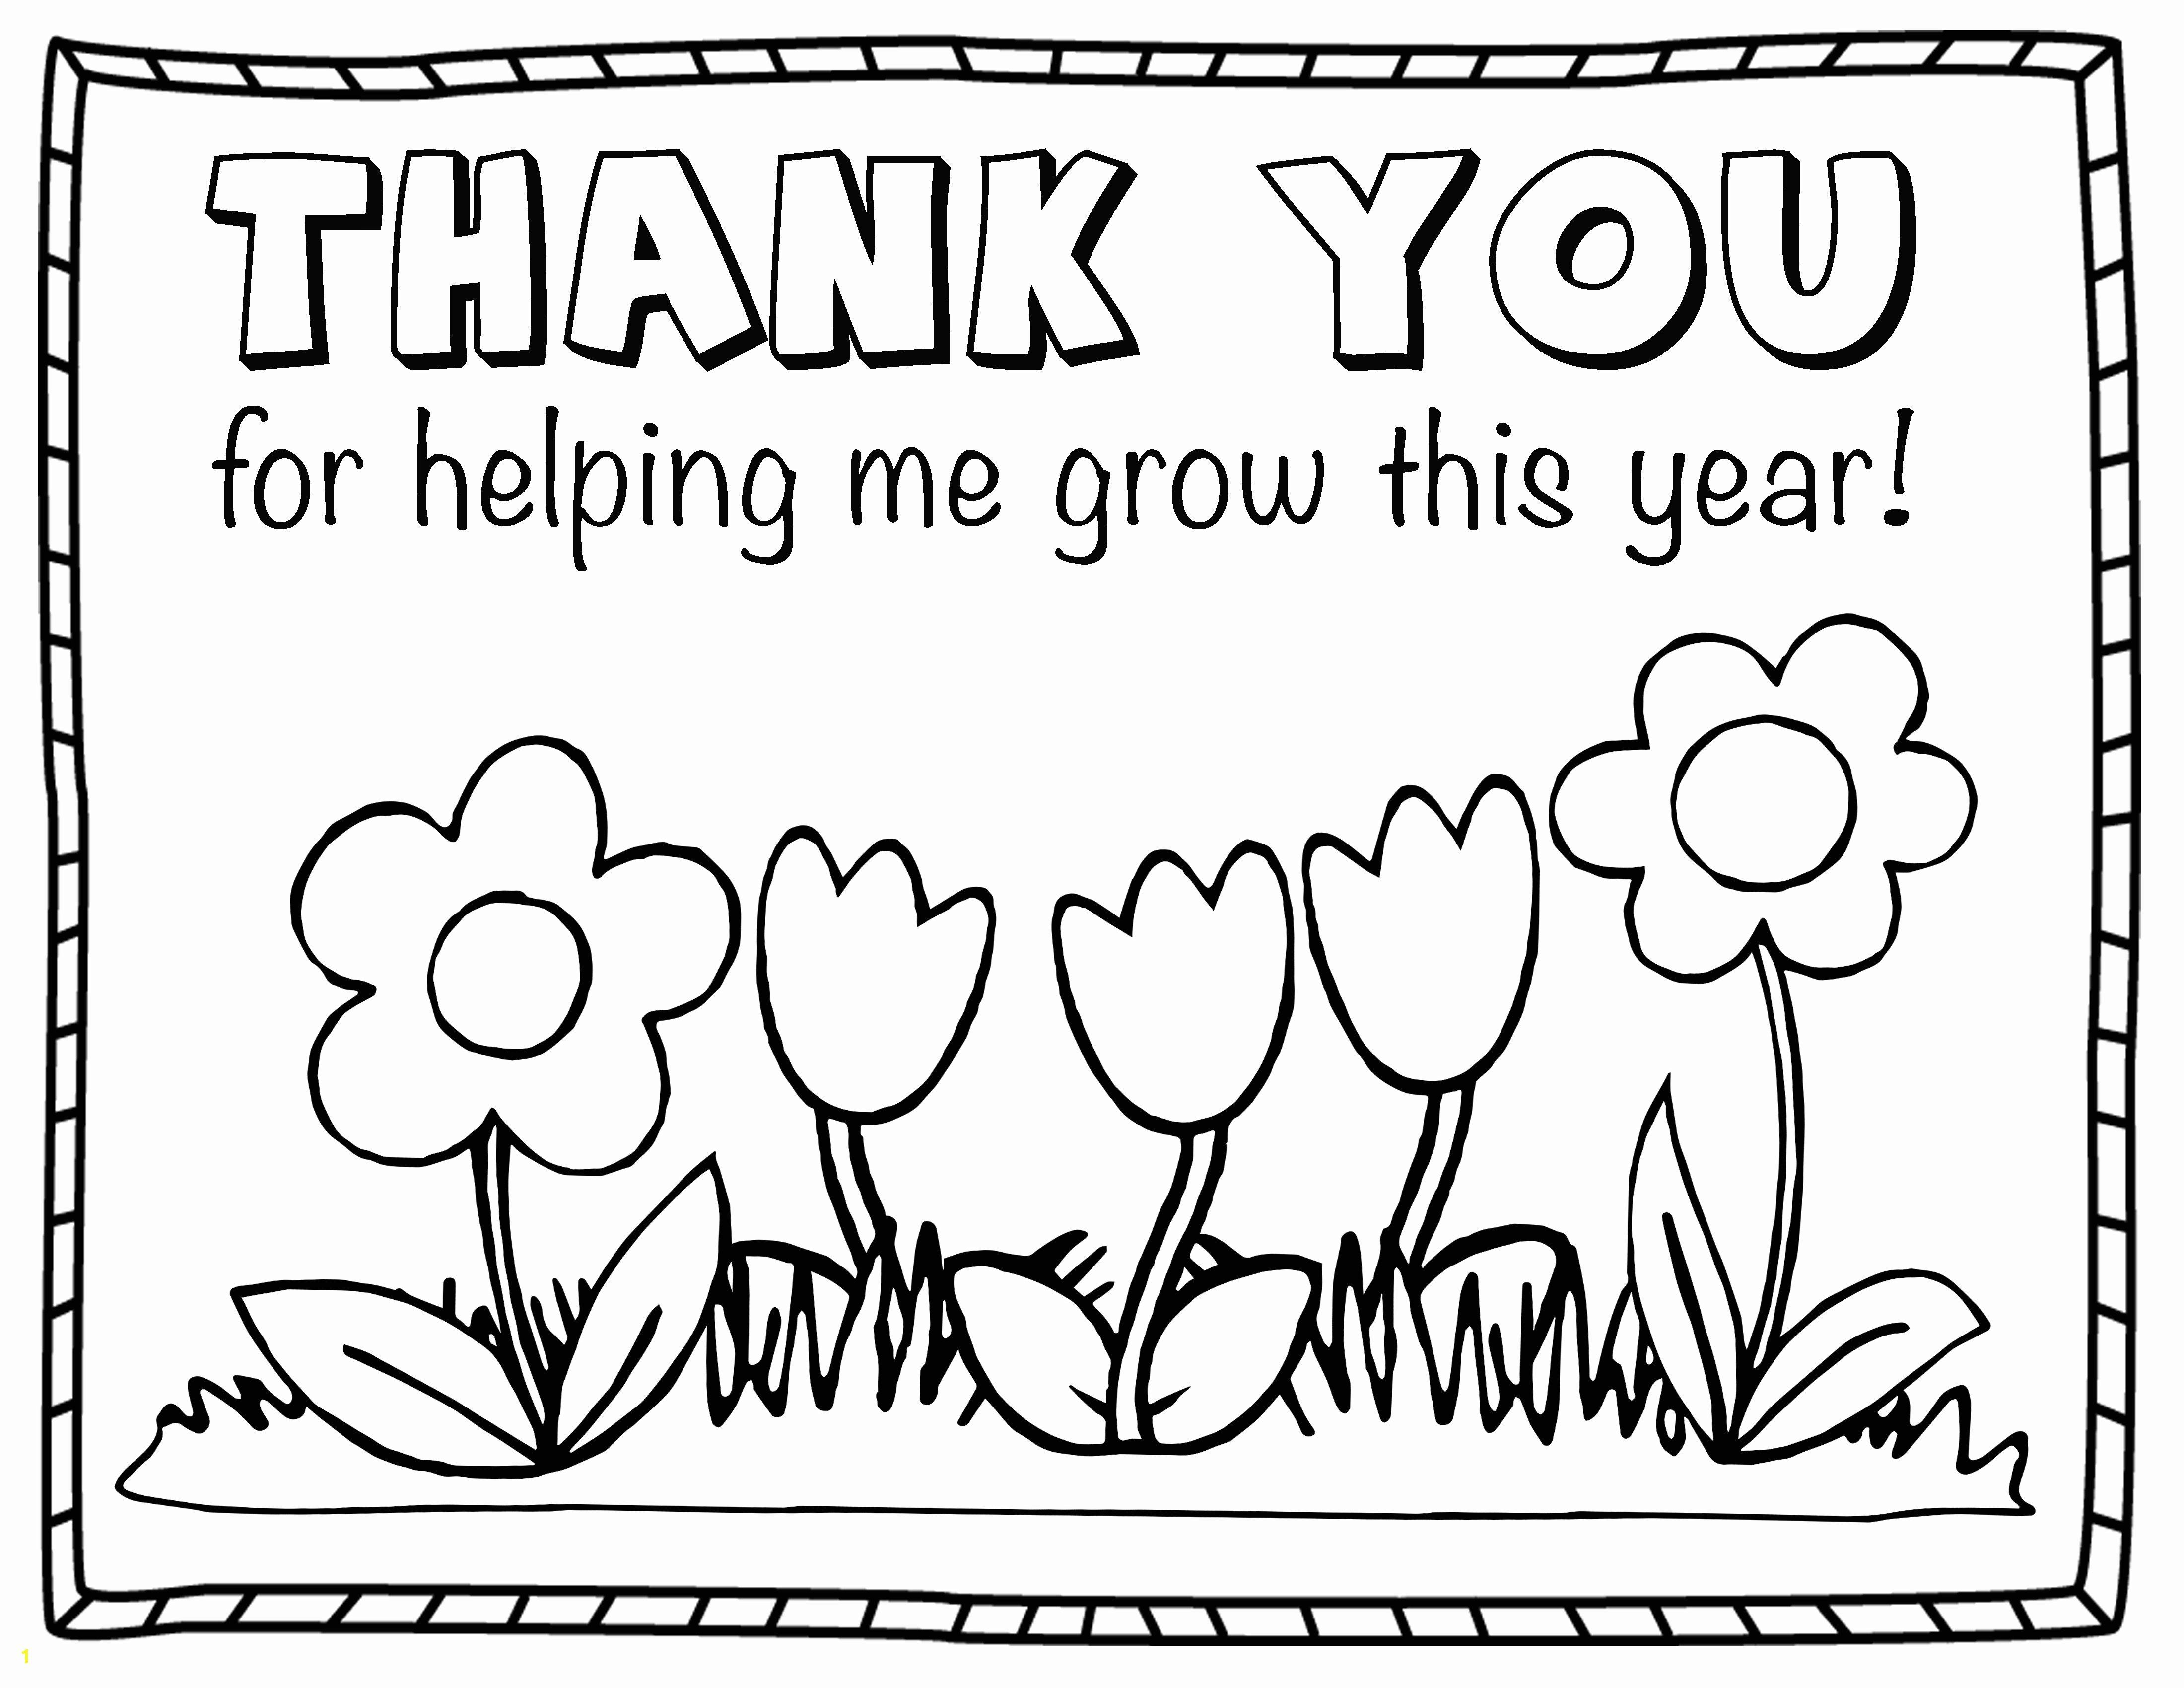 Thank You To Teacher Best Of Thank You Coloring Pages In 2020 Teacher Appreciation Printables Teacher Appreciation Quotes Teacher Appreciation Cards